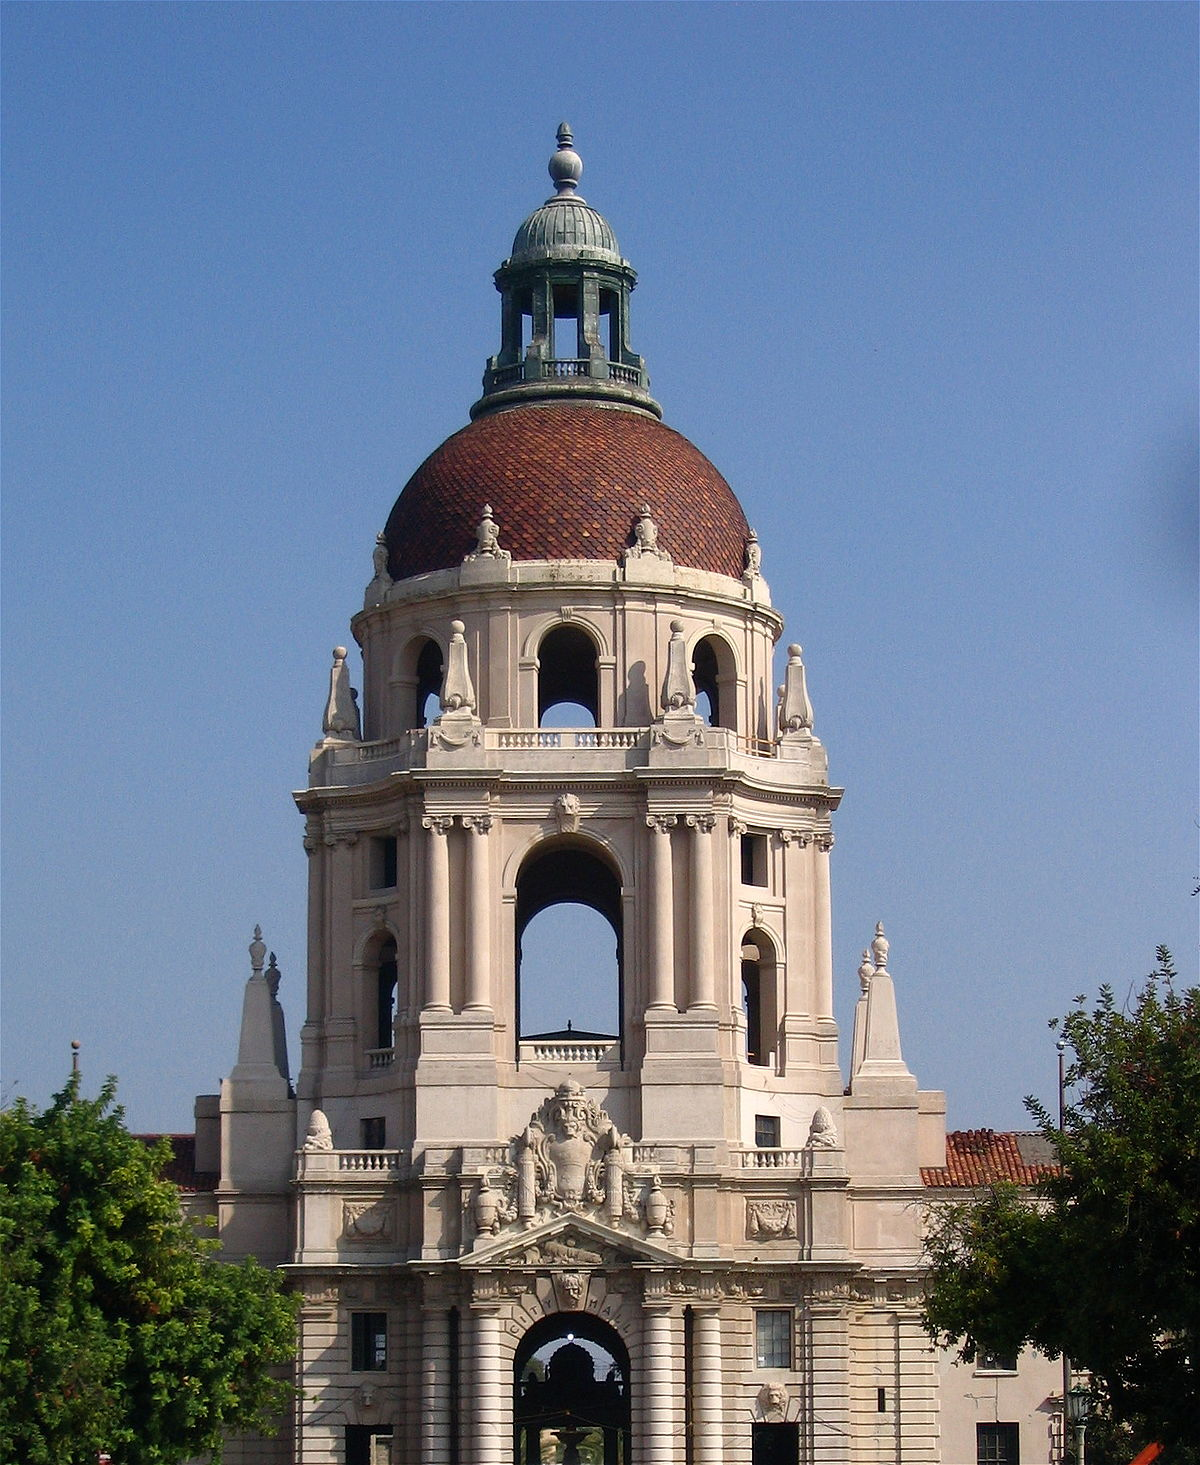 Pasadena california simple english wikipedia the free for Architecture definition wikipedia